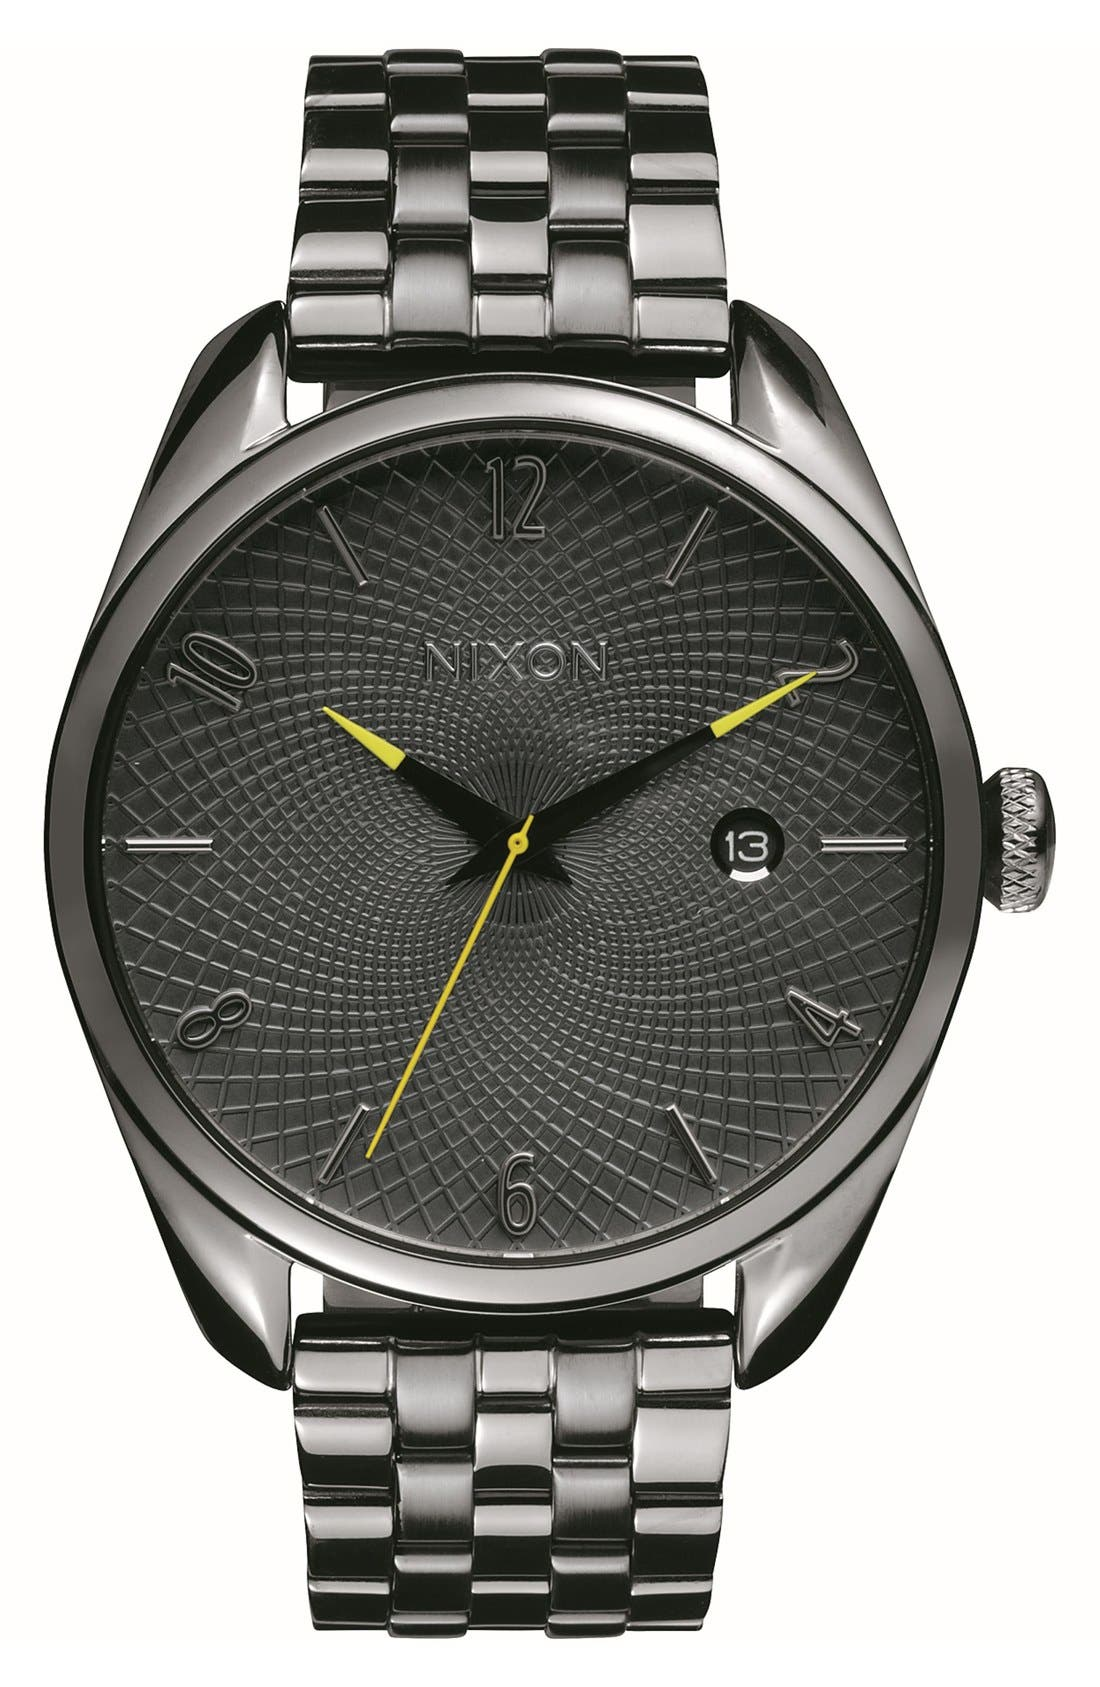 Nixon 'Bullet' Guilloche Dial Bracelet Watch, 38mm